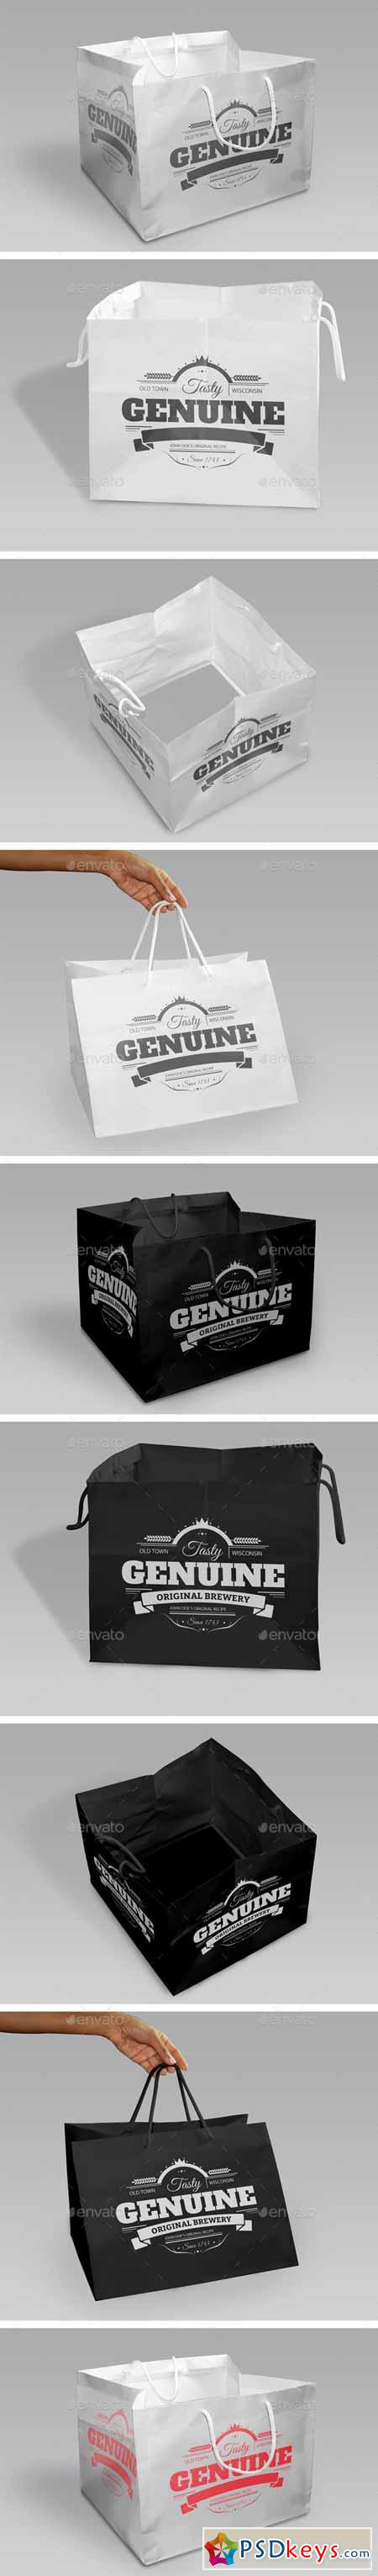 Shopping Bags Mock-Up 10545227